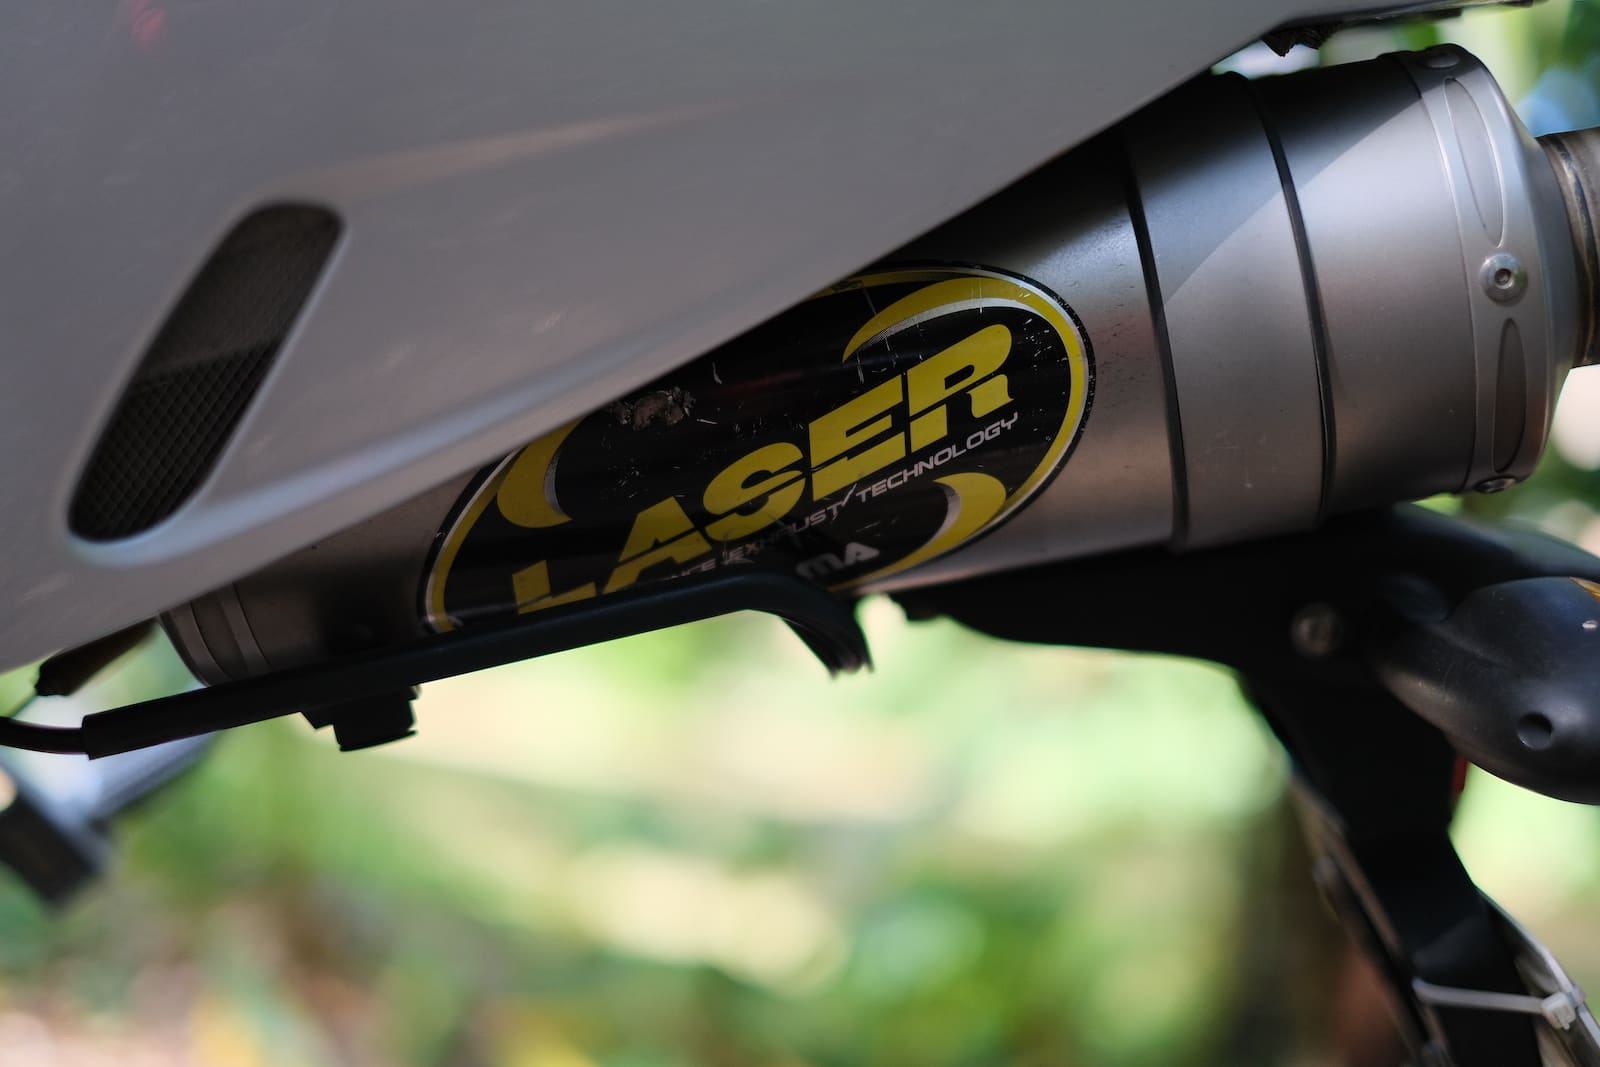 Laser exhaust system for BMW R1200S